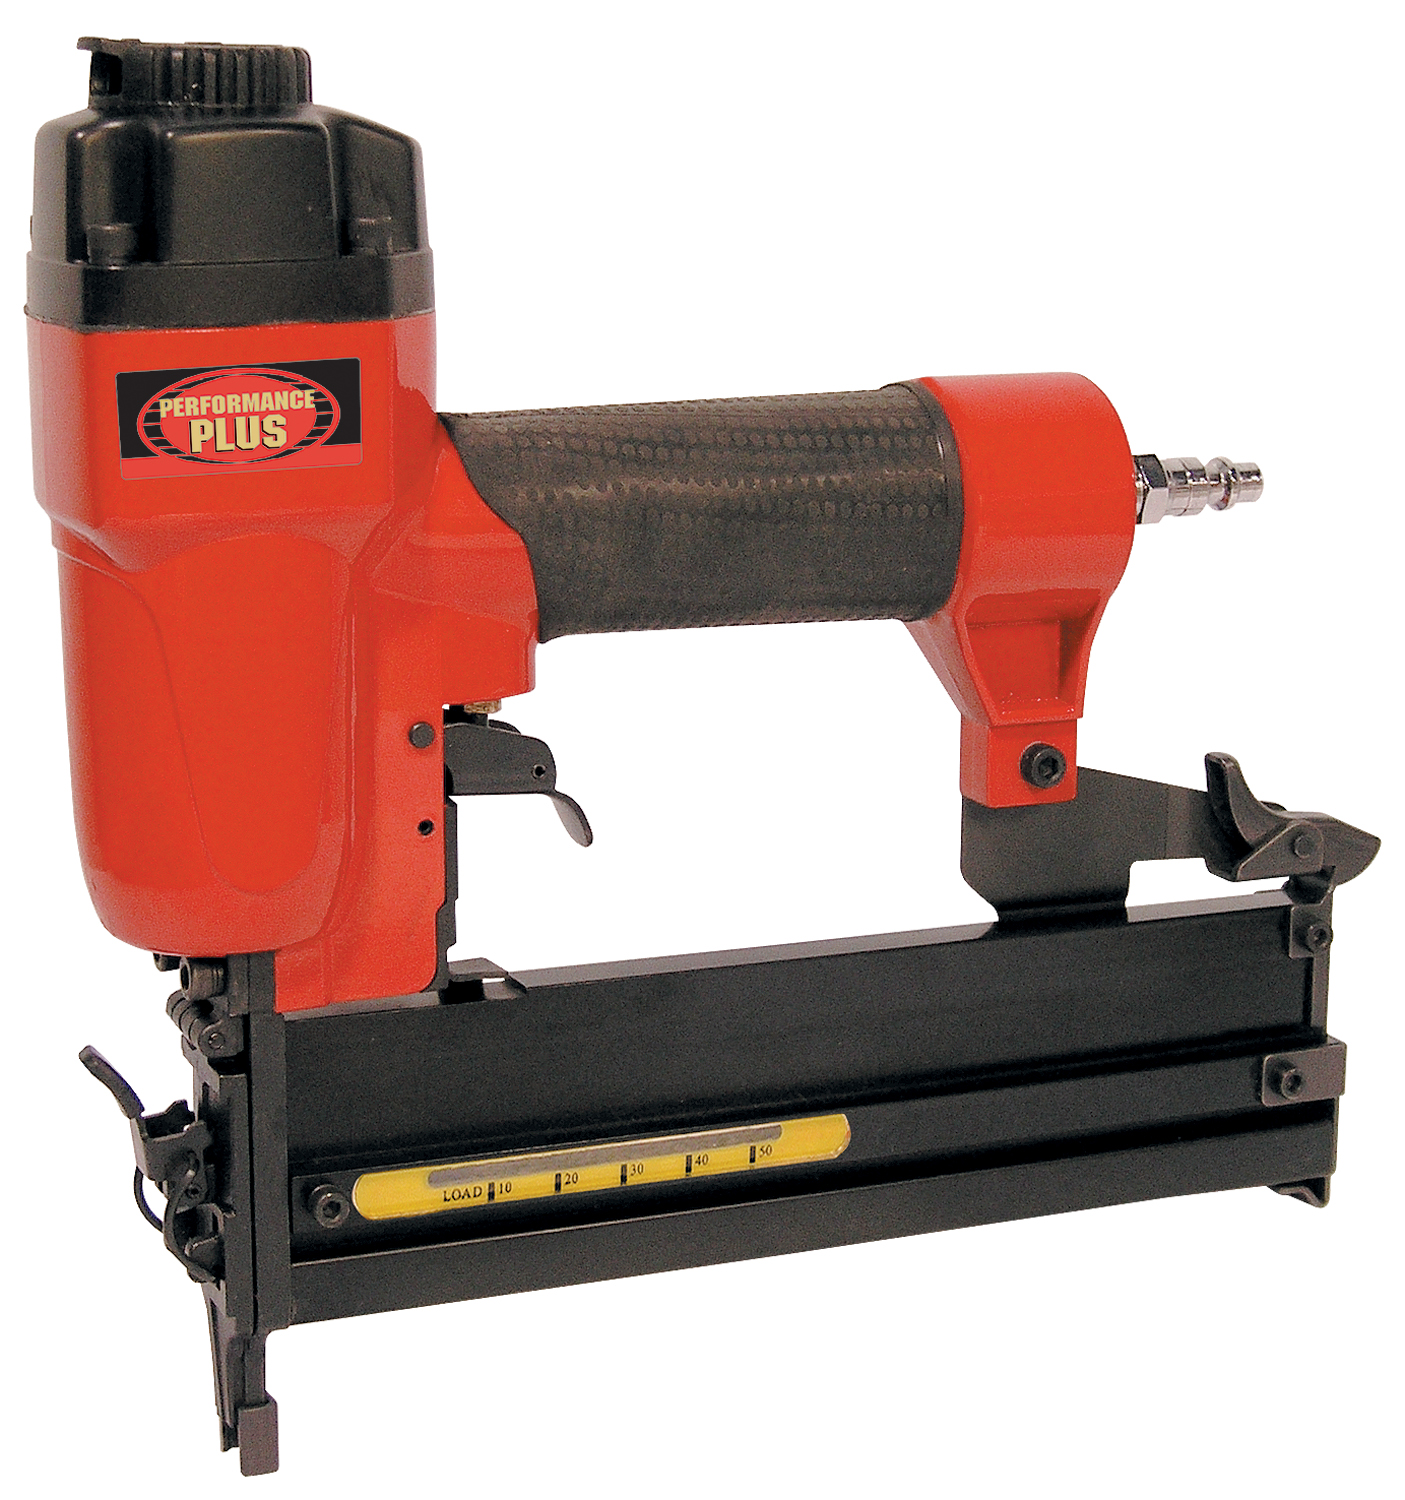 Performance Plus 8210NS 2 in 1 Nailer/Stapler, Brad 18 ga. 3/4 - 2